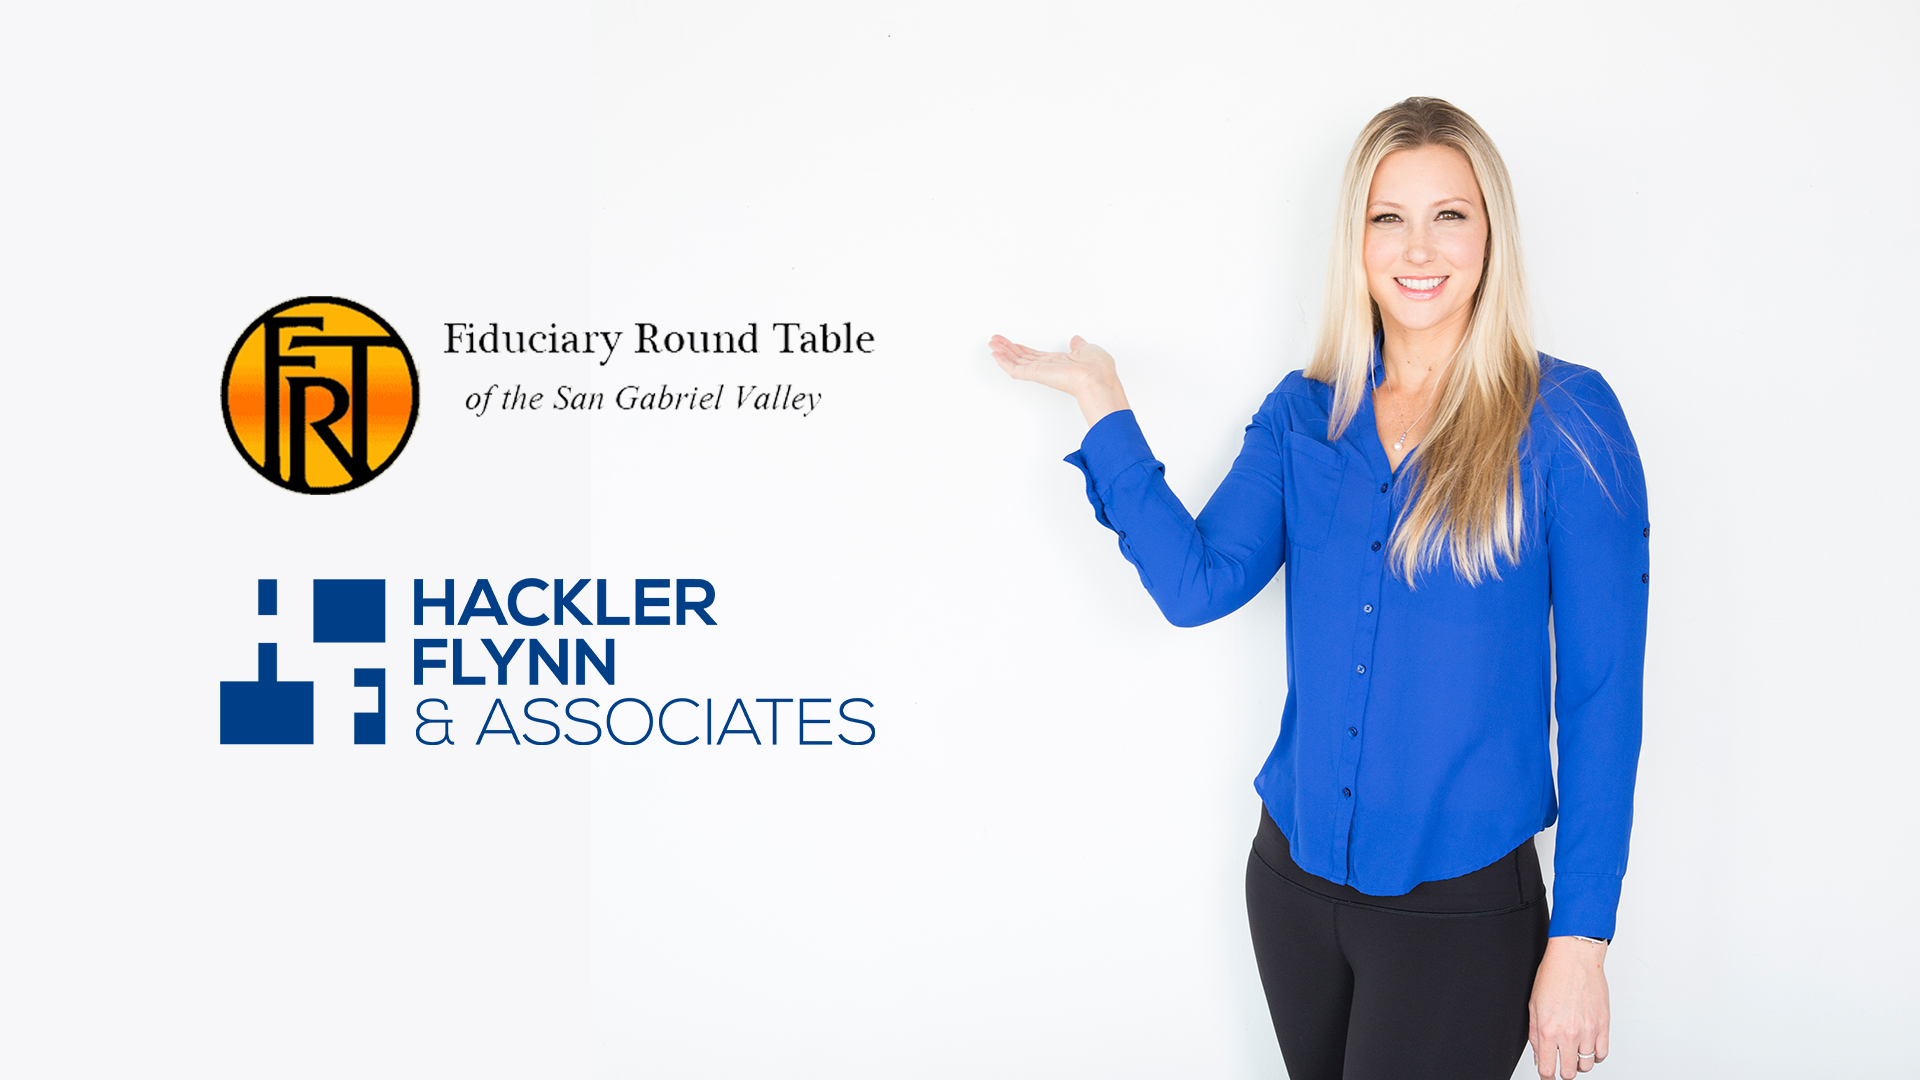 Hackler Flynn Fiduciary Roundtable of the San Gabriel Valley